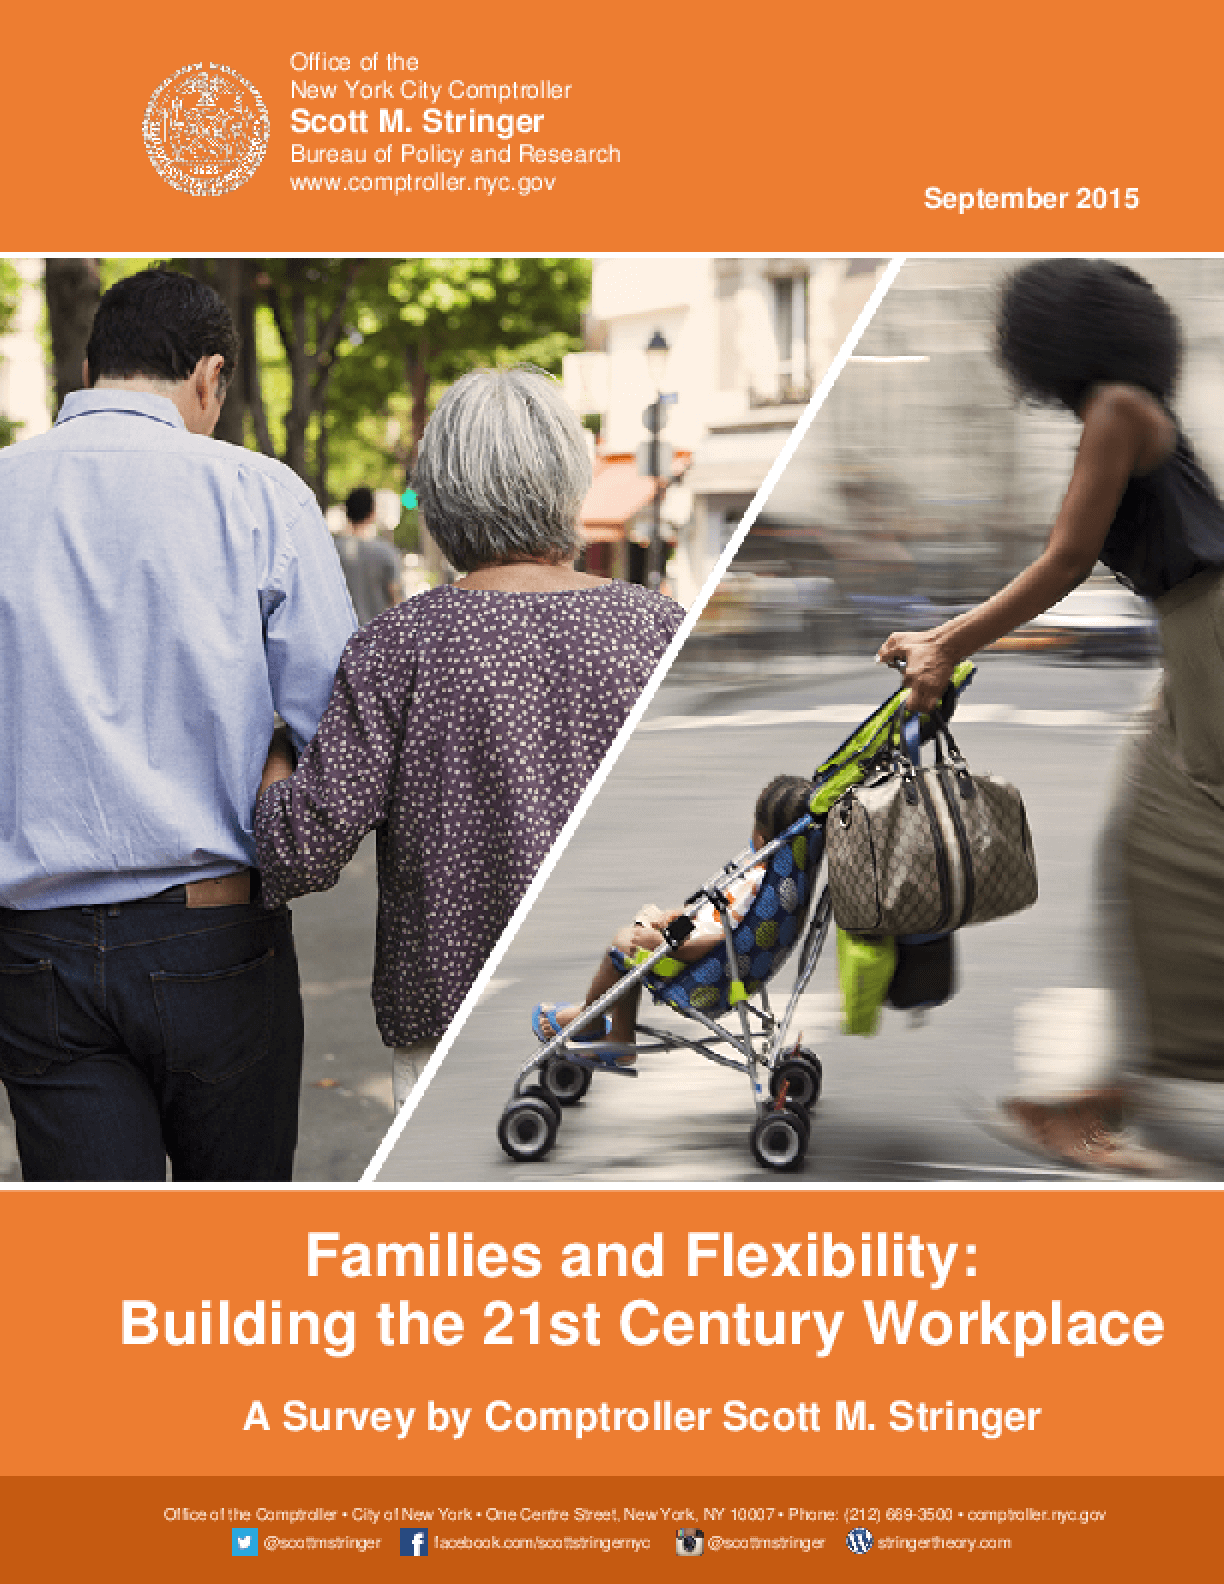 Families and Flexibility: Building the 21st Century Workplace